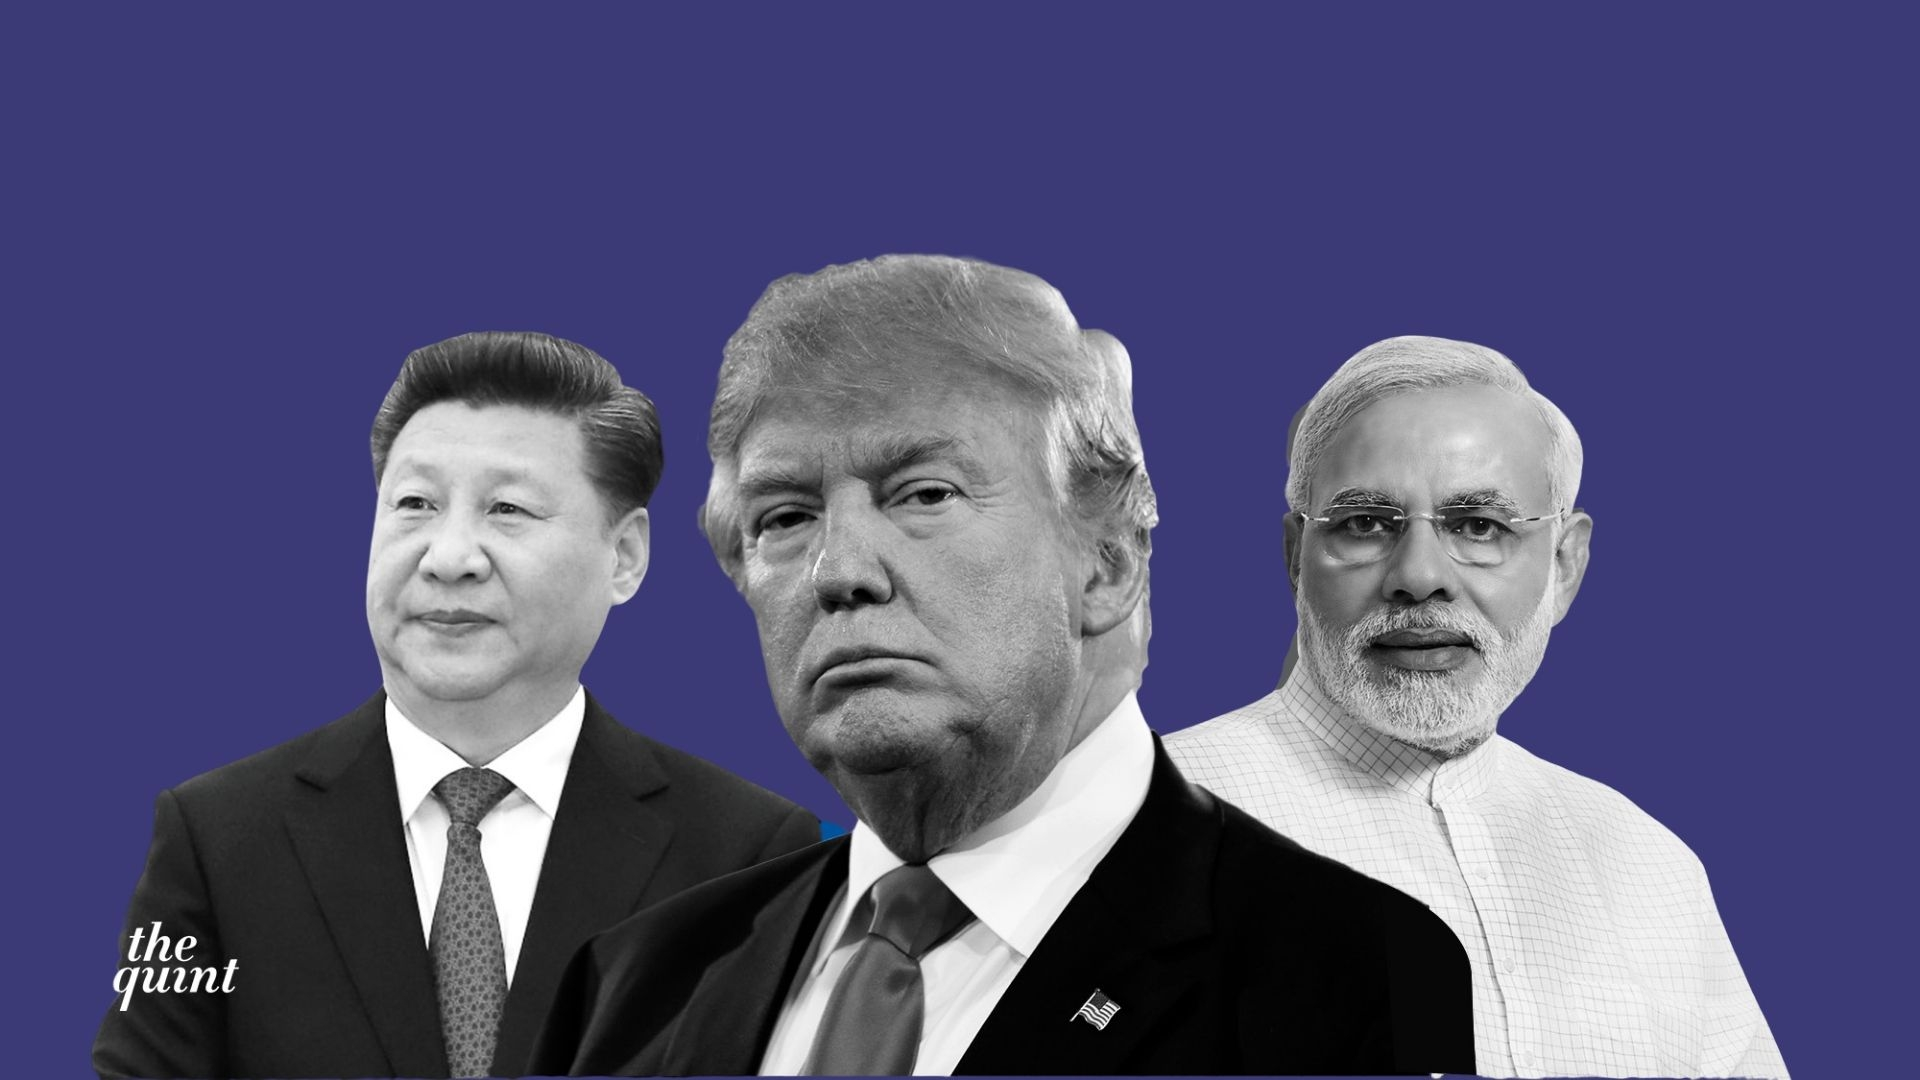 Ready to Mediate in Raging Indo-China Border Dispute: Donald Trump